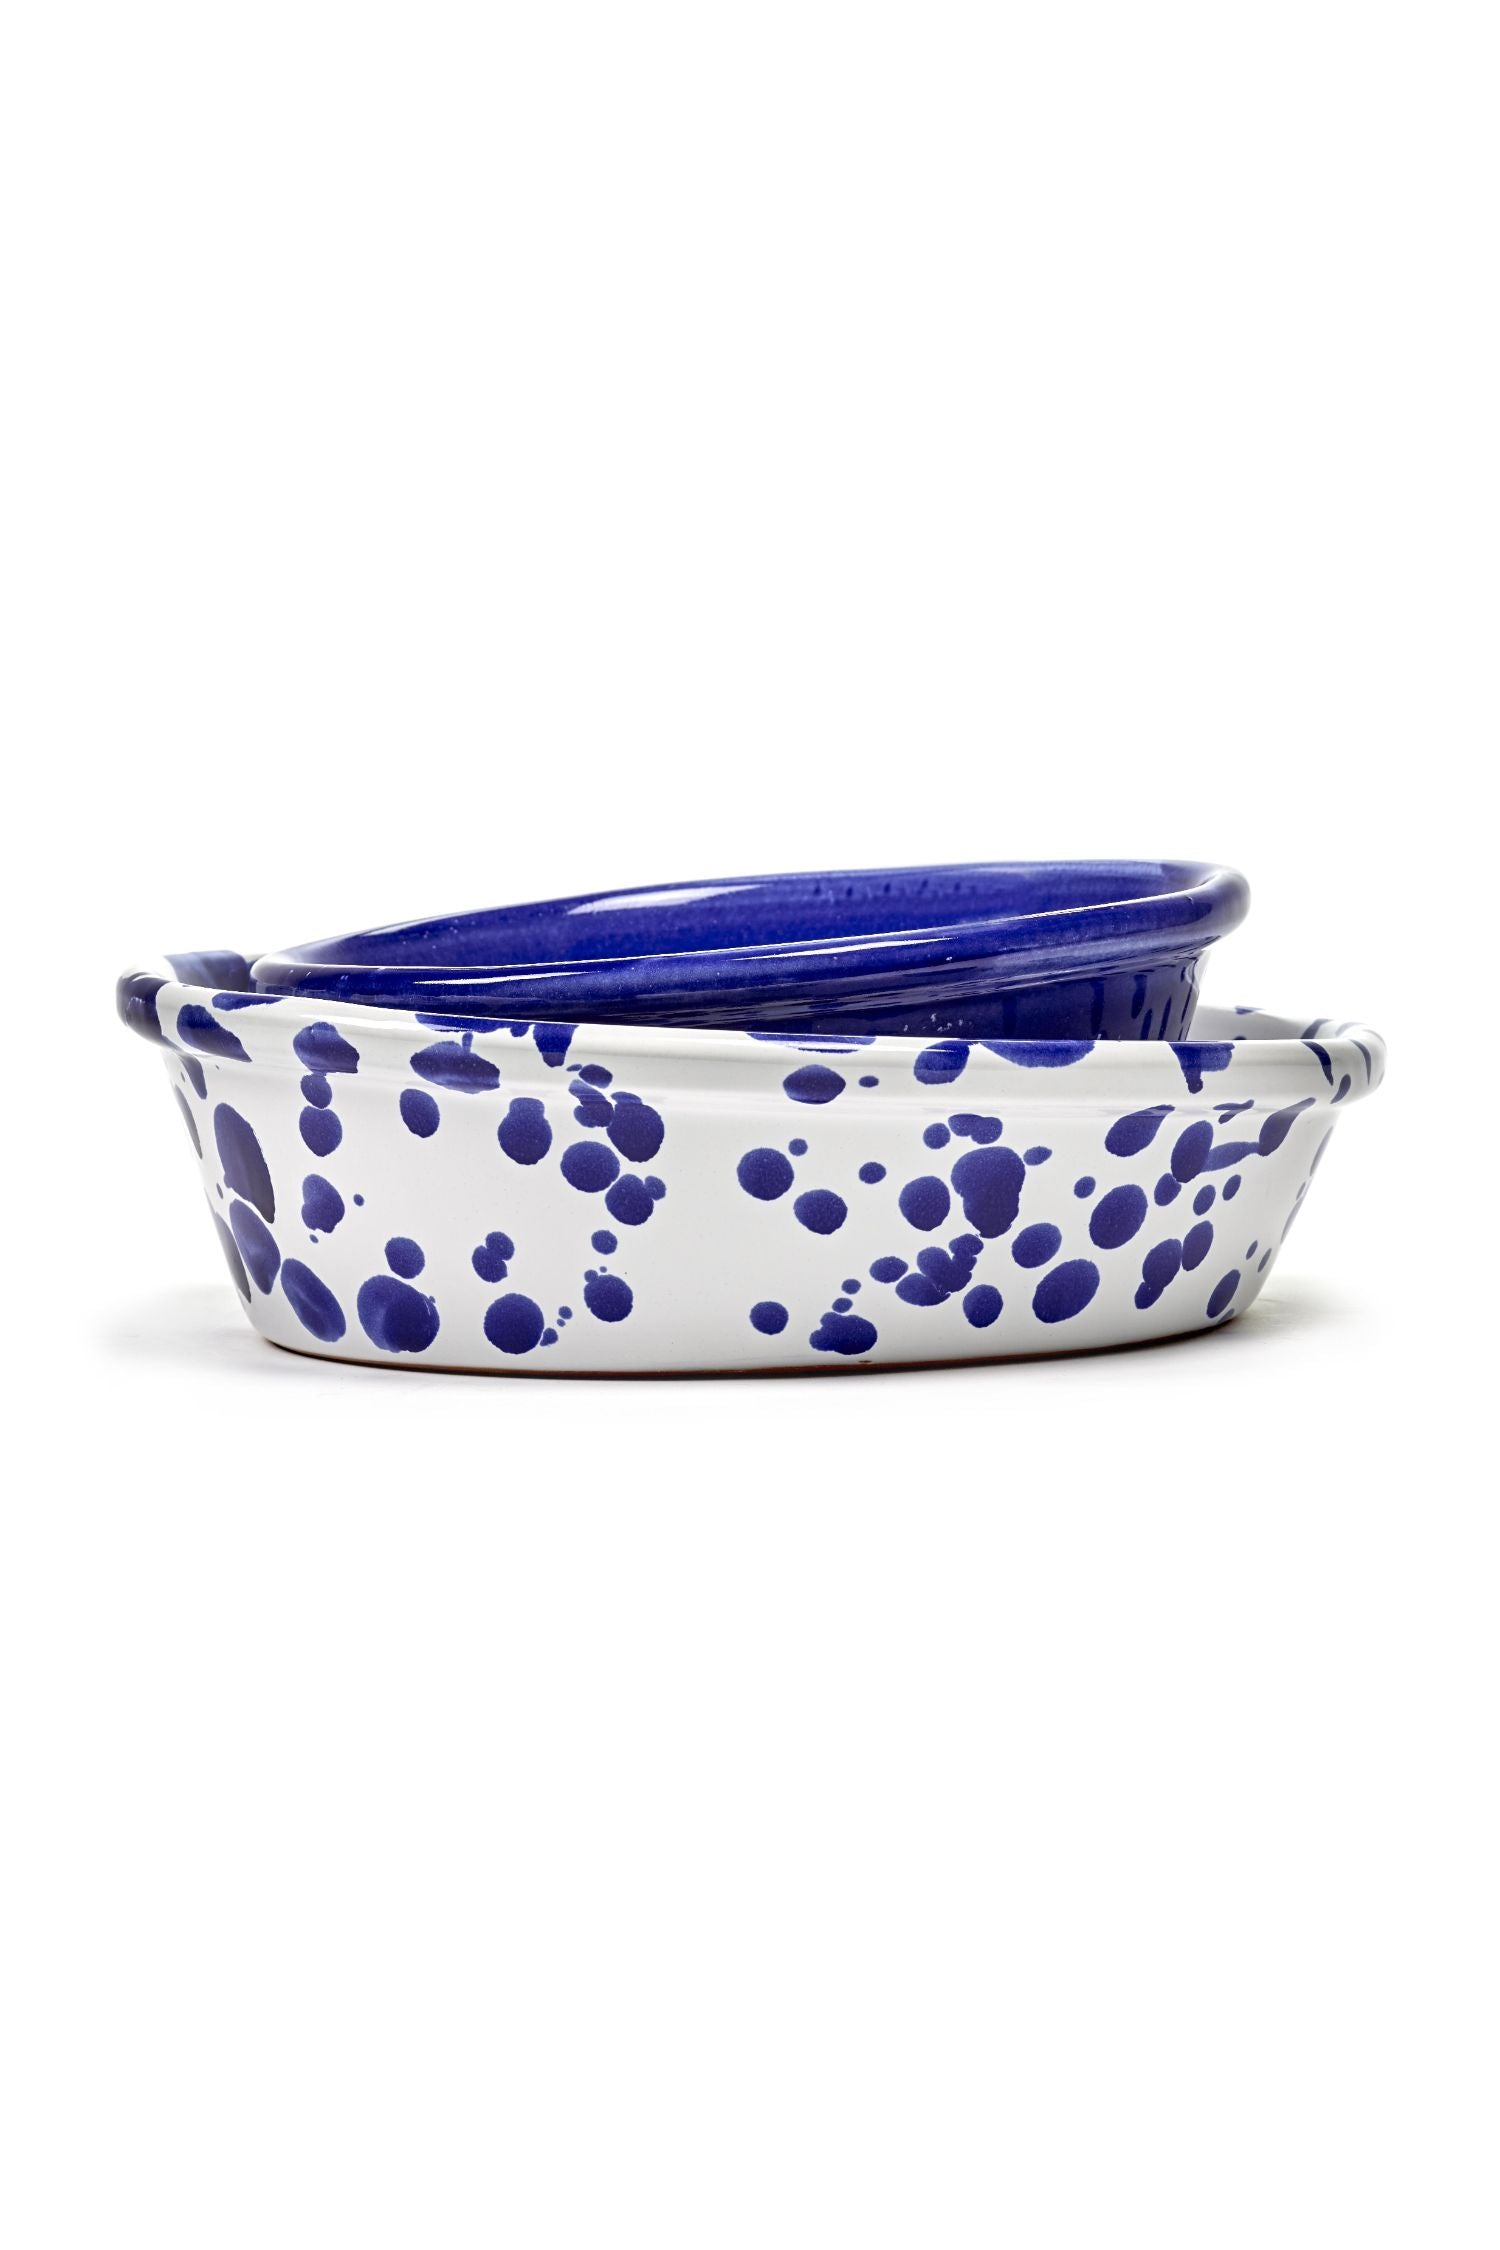 nomade salad bowl M